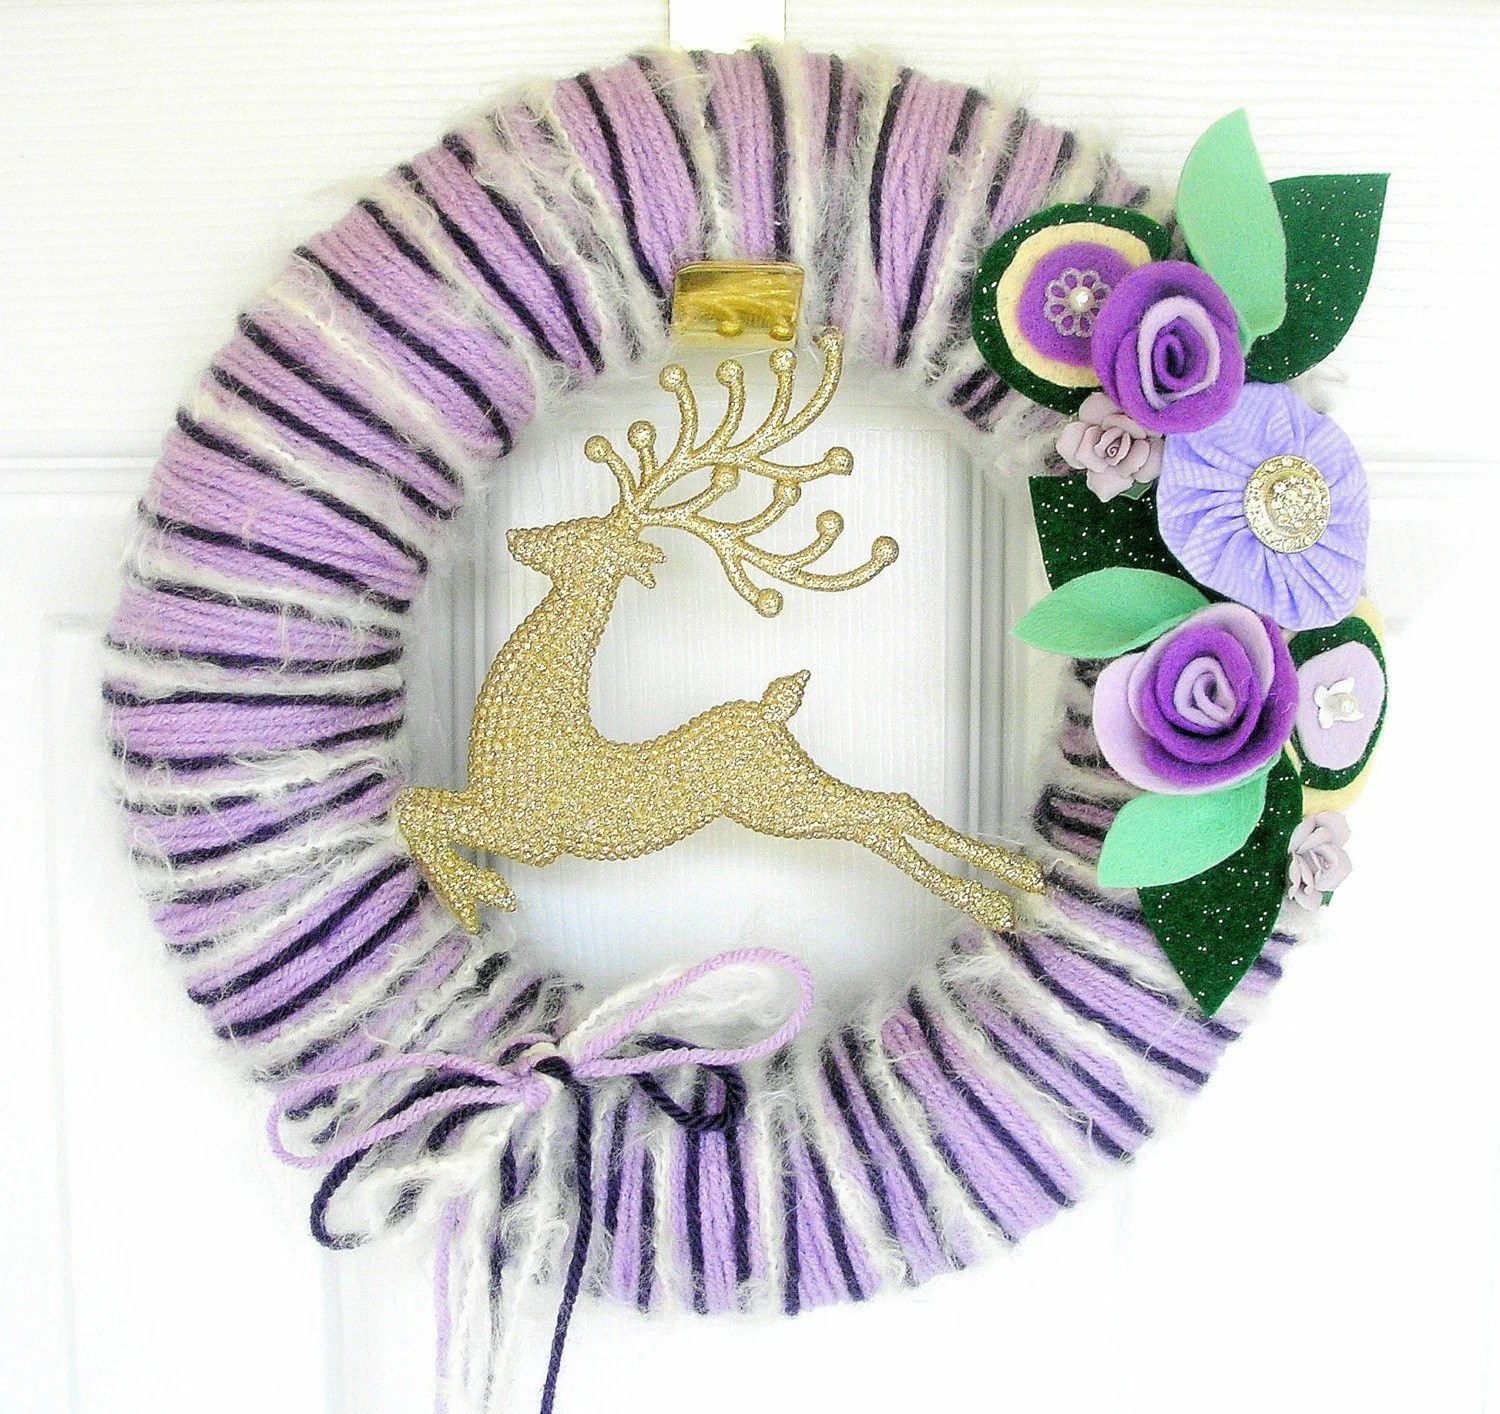 Violet Vixen Yarn Wreath